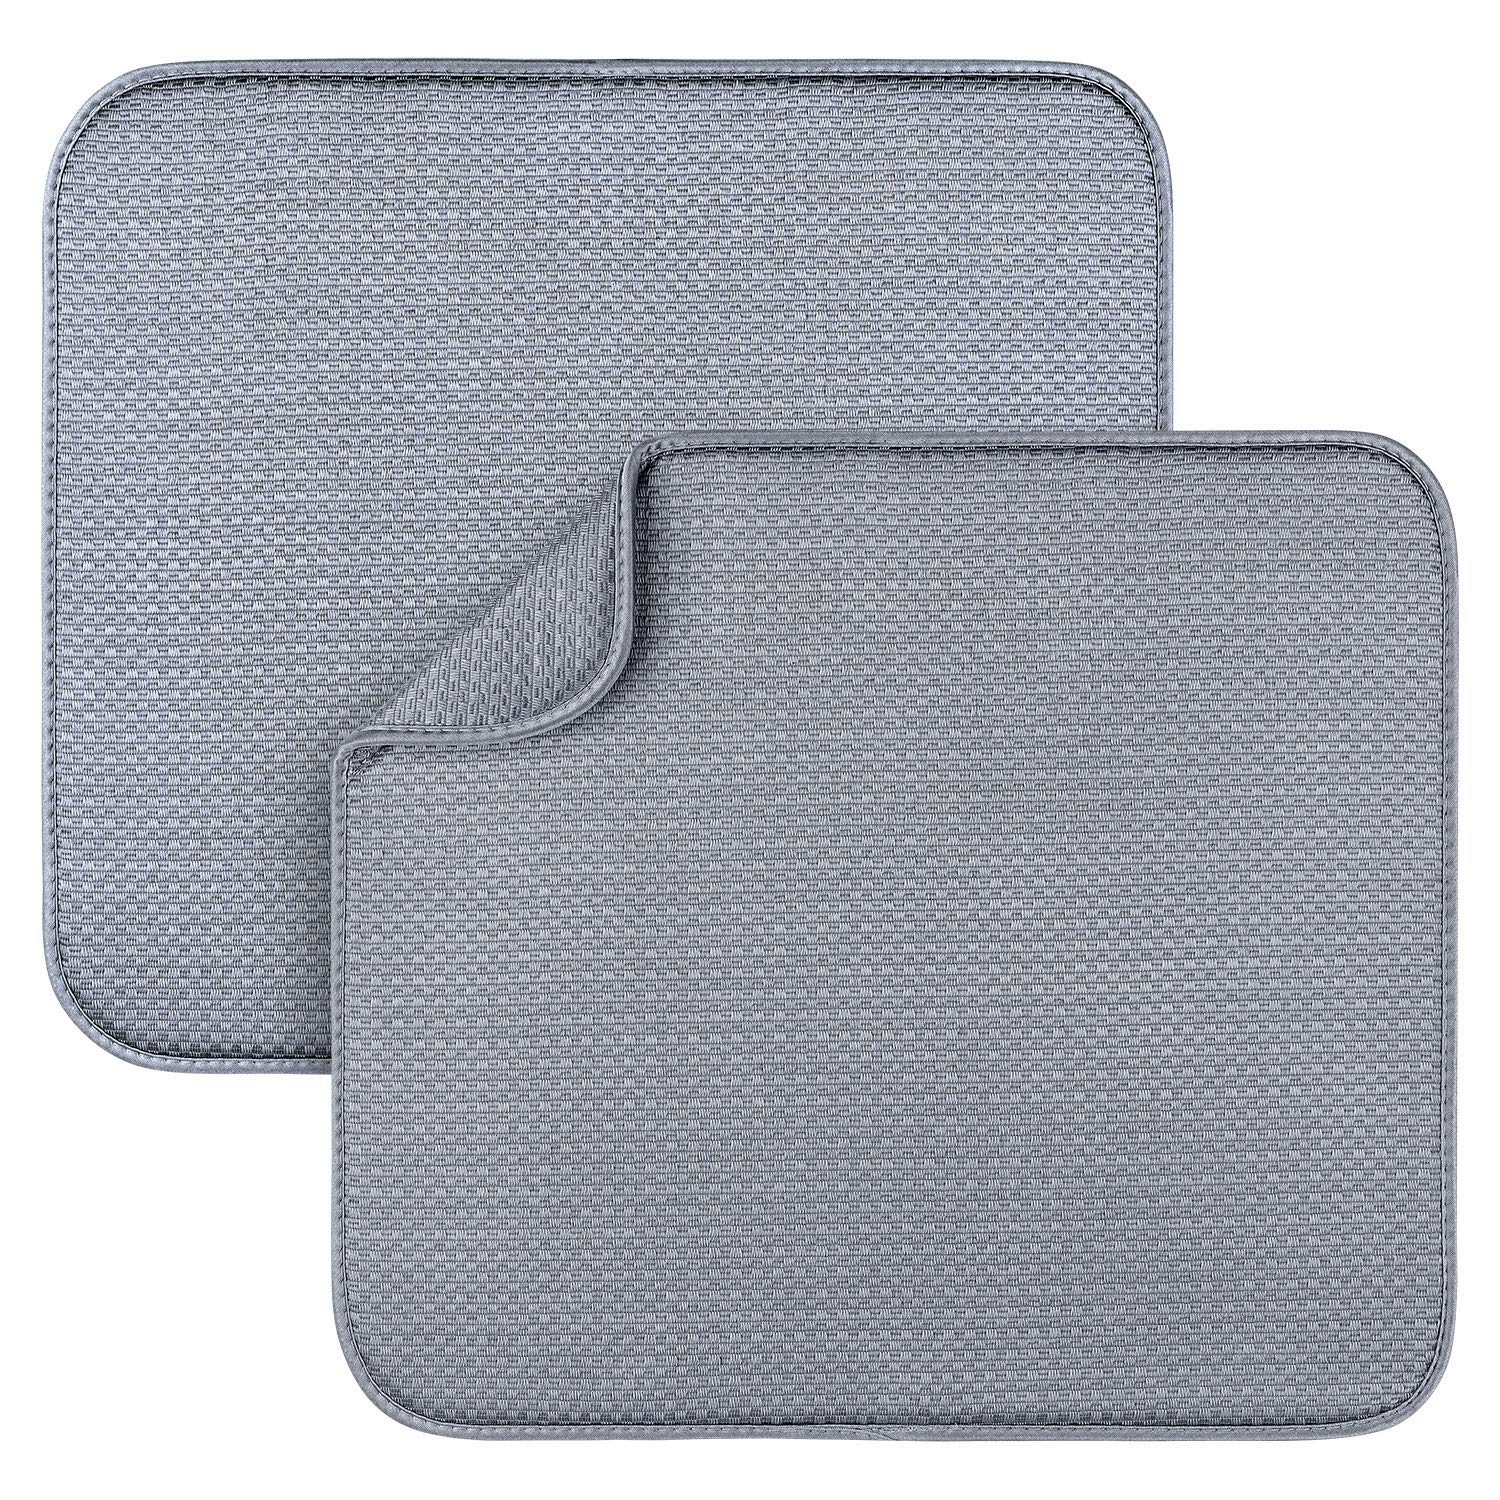 2 Pack Dish Drying Mats for Kitchen, Microfiber Dish Drying Rack Pad, Kitchen Counter Mat - 18X16 Inch by Awpeye